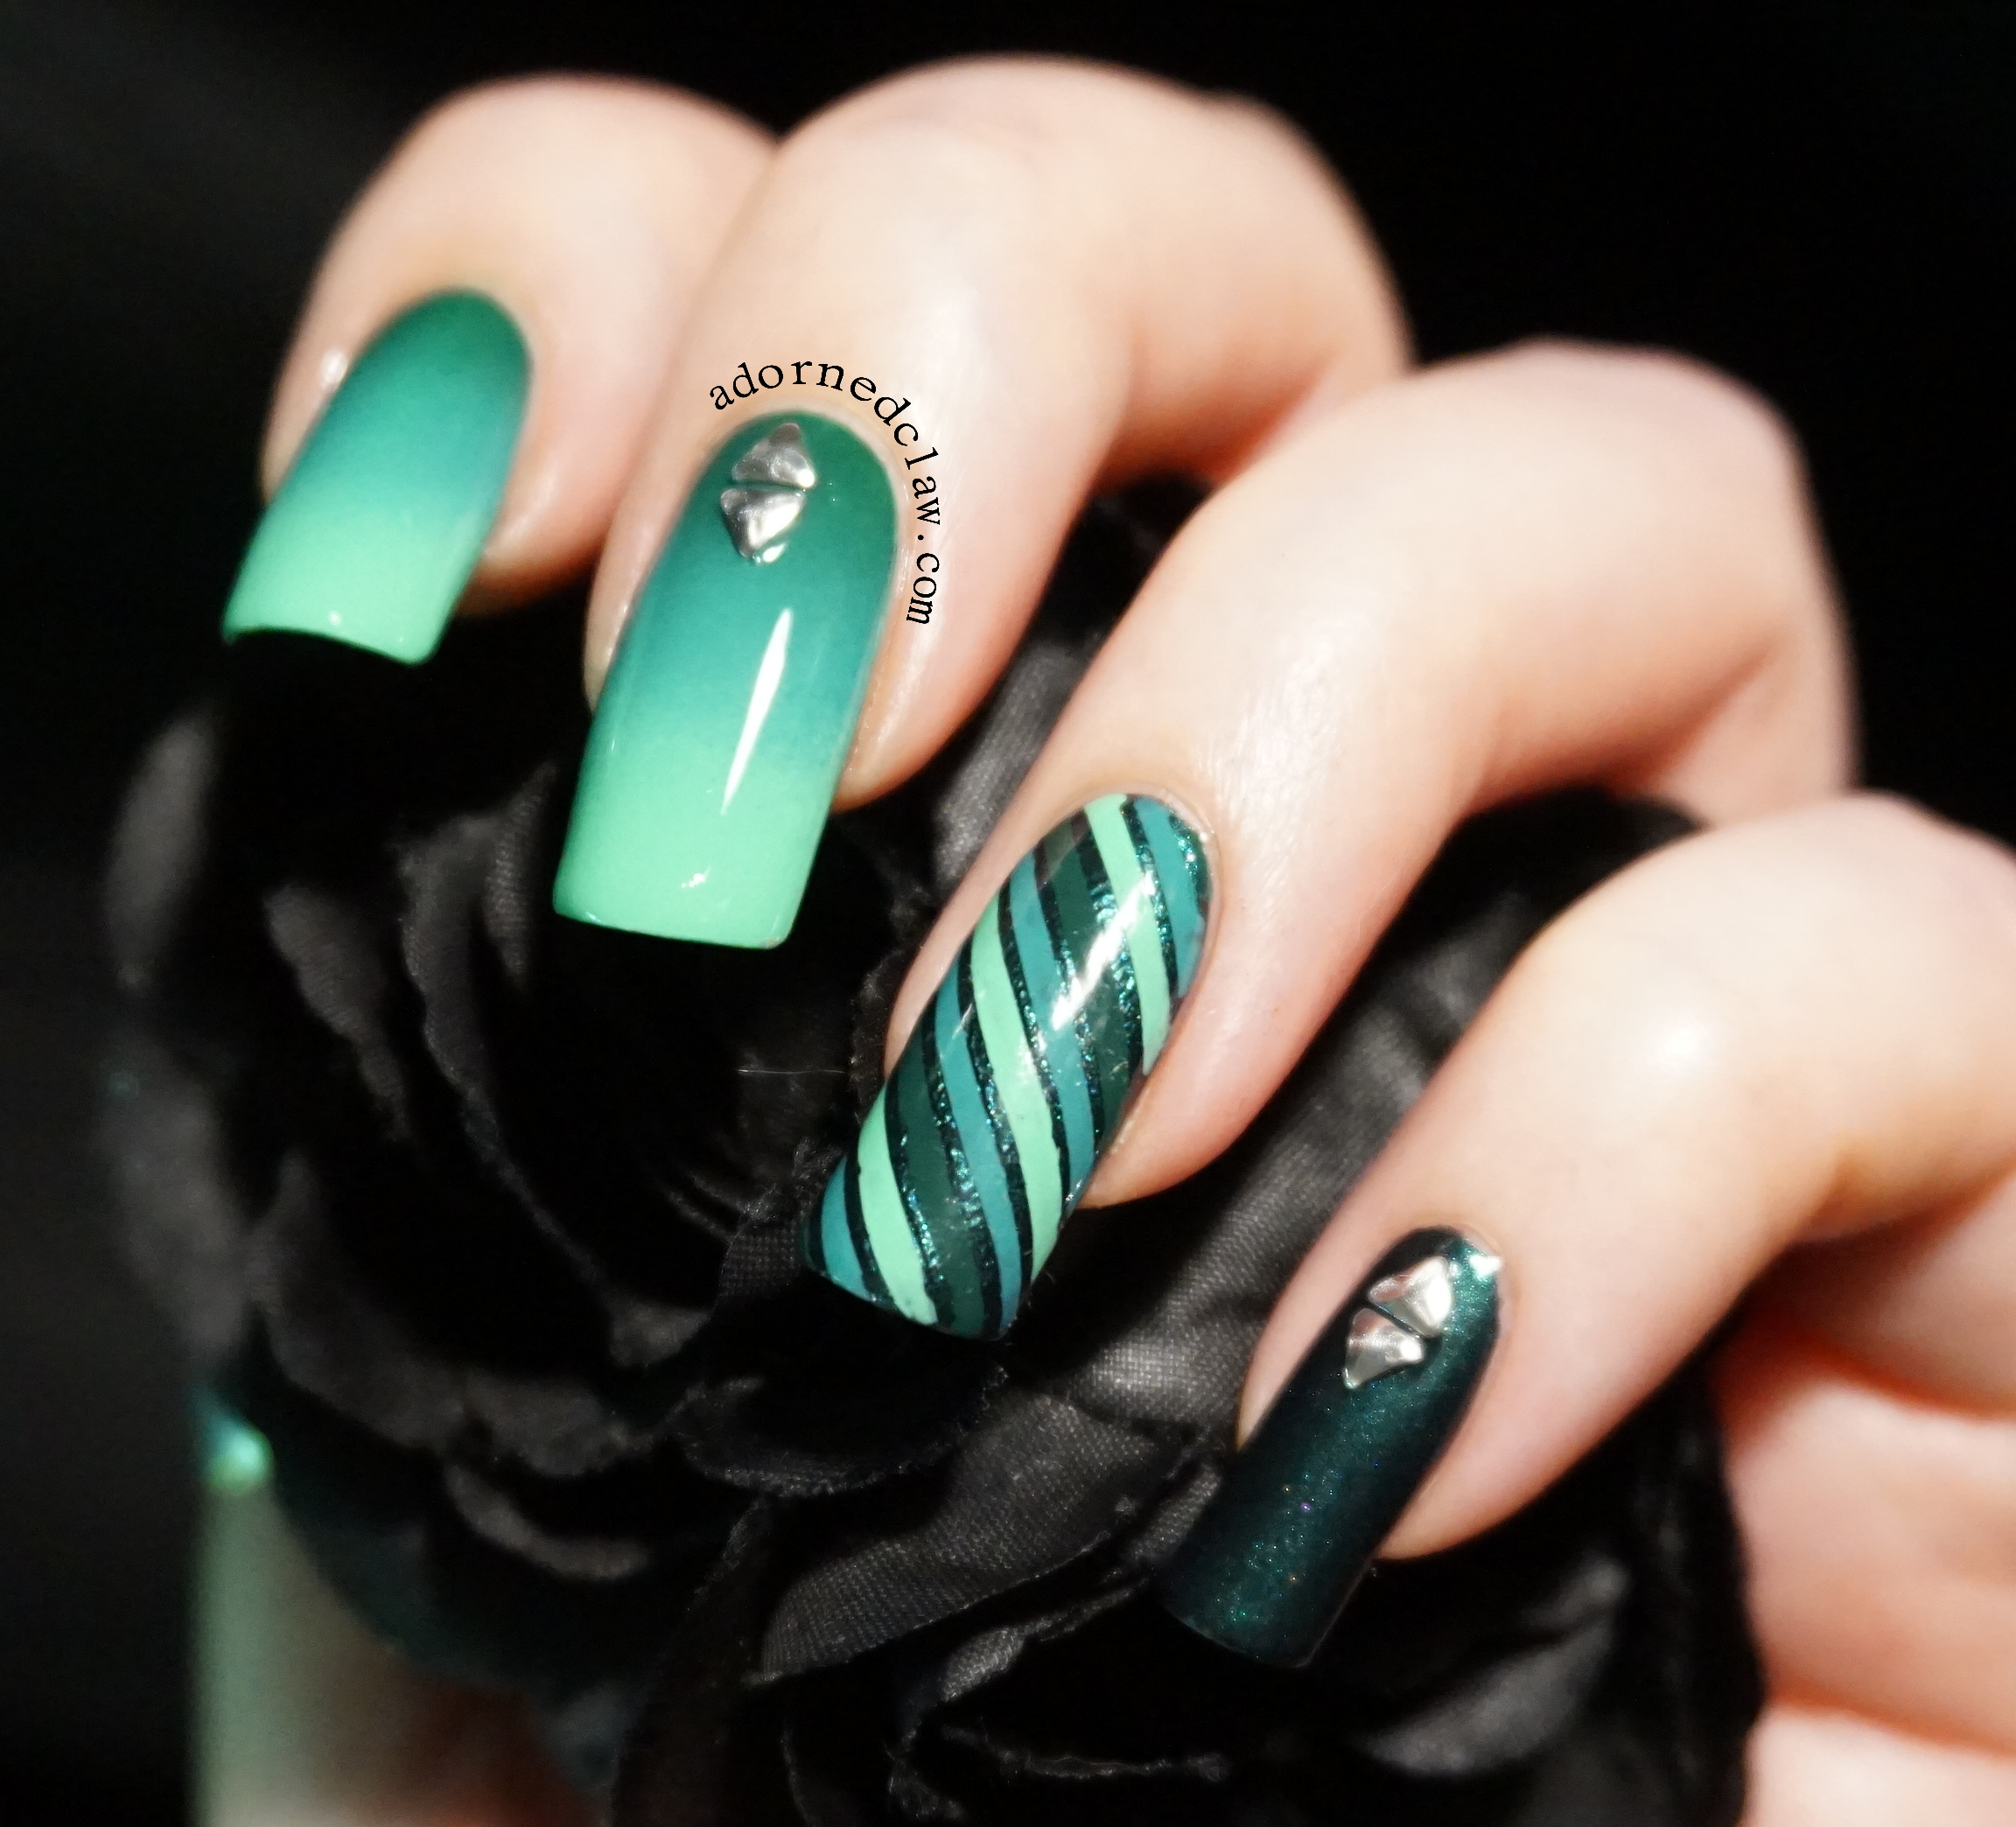 The adorned claw nail art page 2 teal nail art ooh some fun news i have a shiny new camera yay its a sony a 5000 so please dont be to horrified by my dreadful photography while i work prinsesfo Image collections